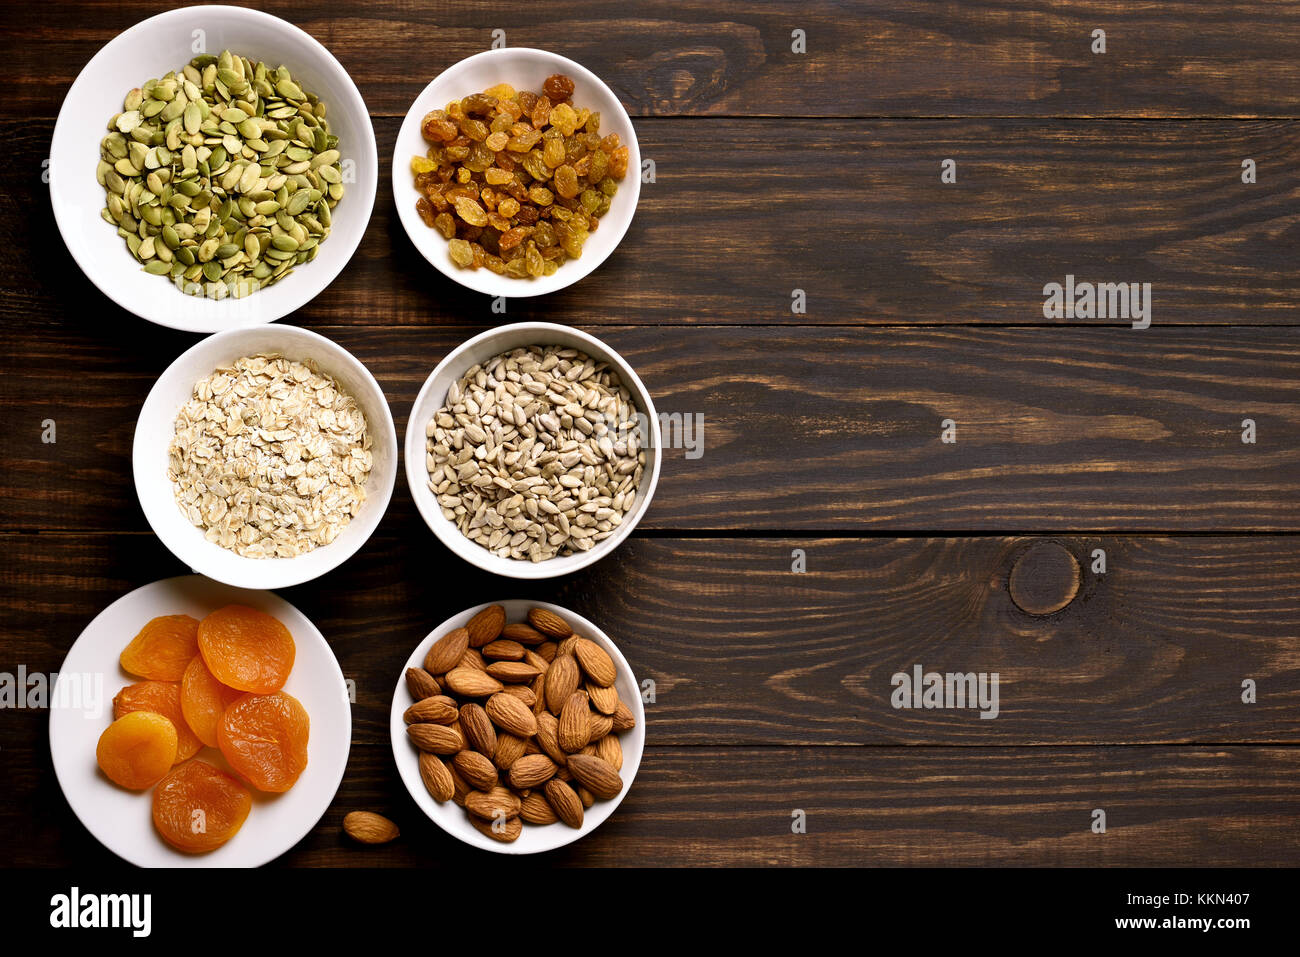 Ingredients for cooking granola on wooden background with copy space. Healthy snack in bowl. Top view, flat lay - Stock Image